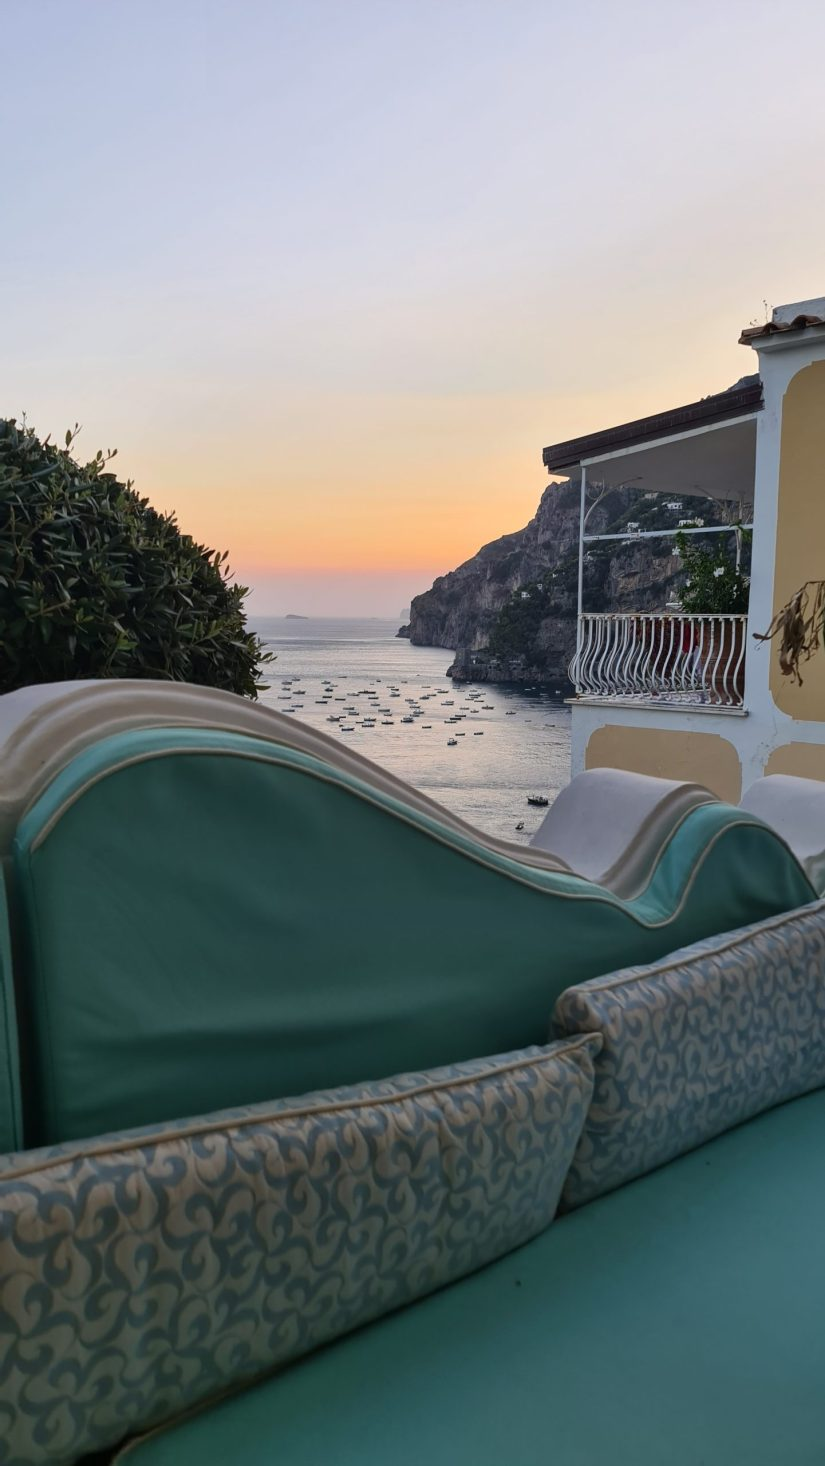 Top 4 Best restaurants in Positano Italy with a view 77